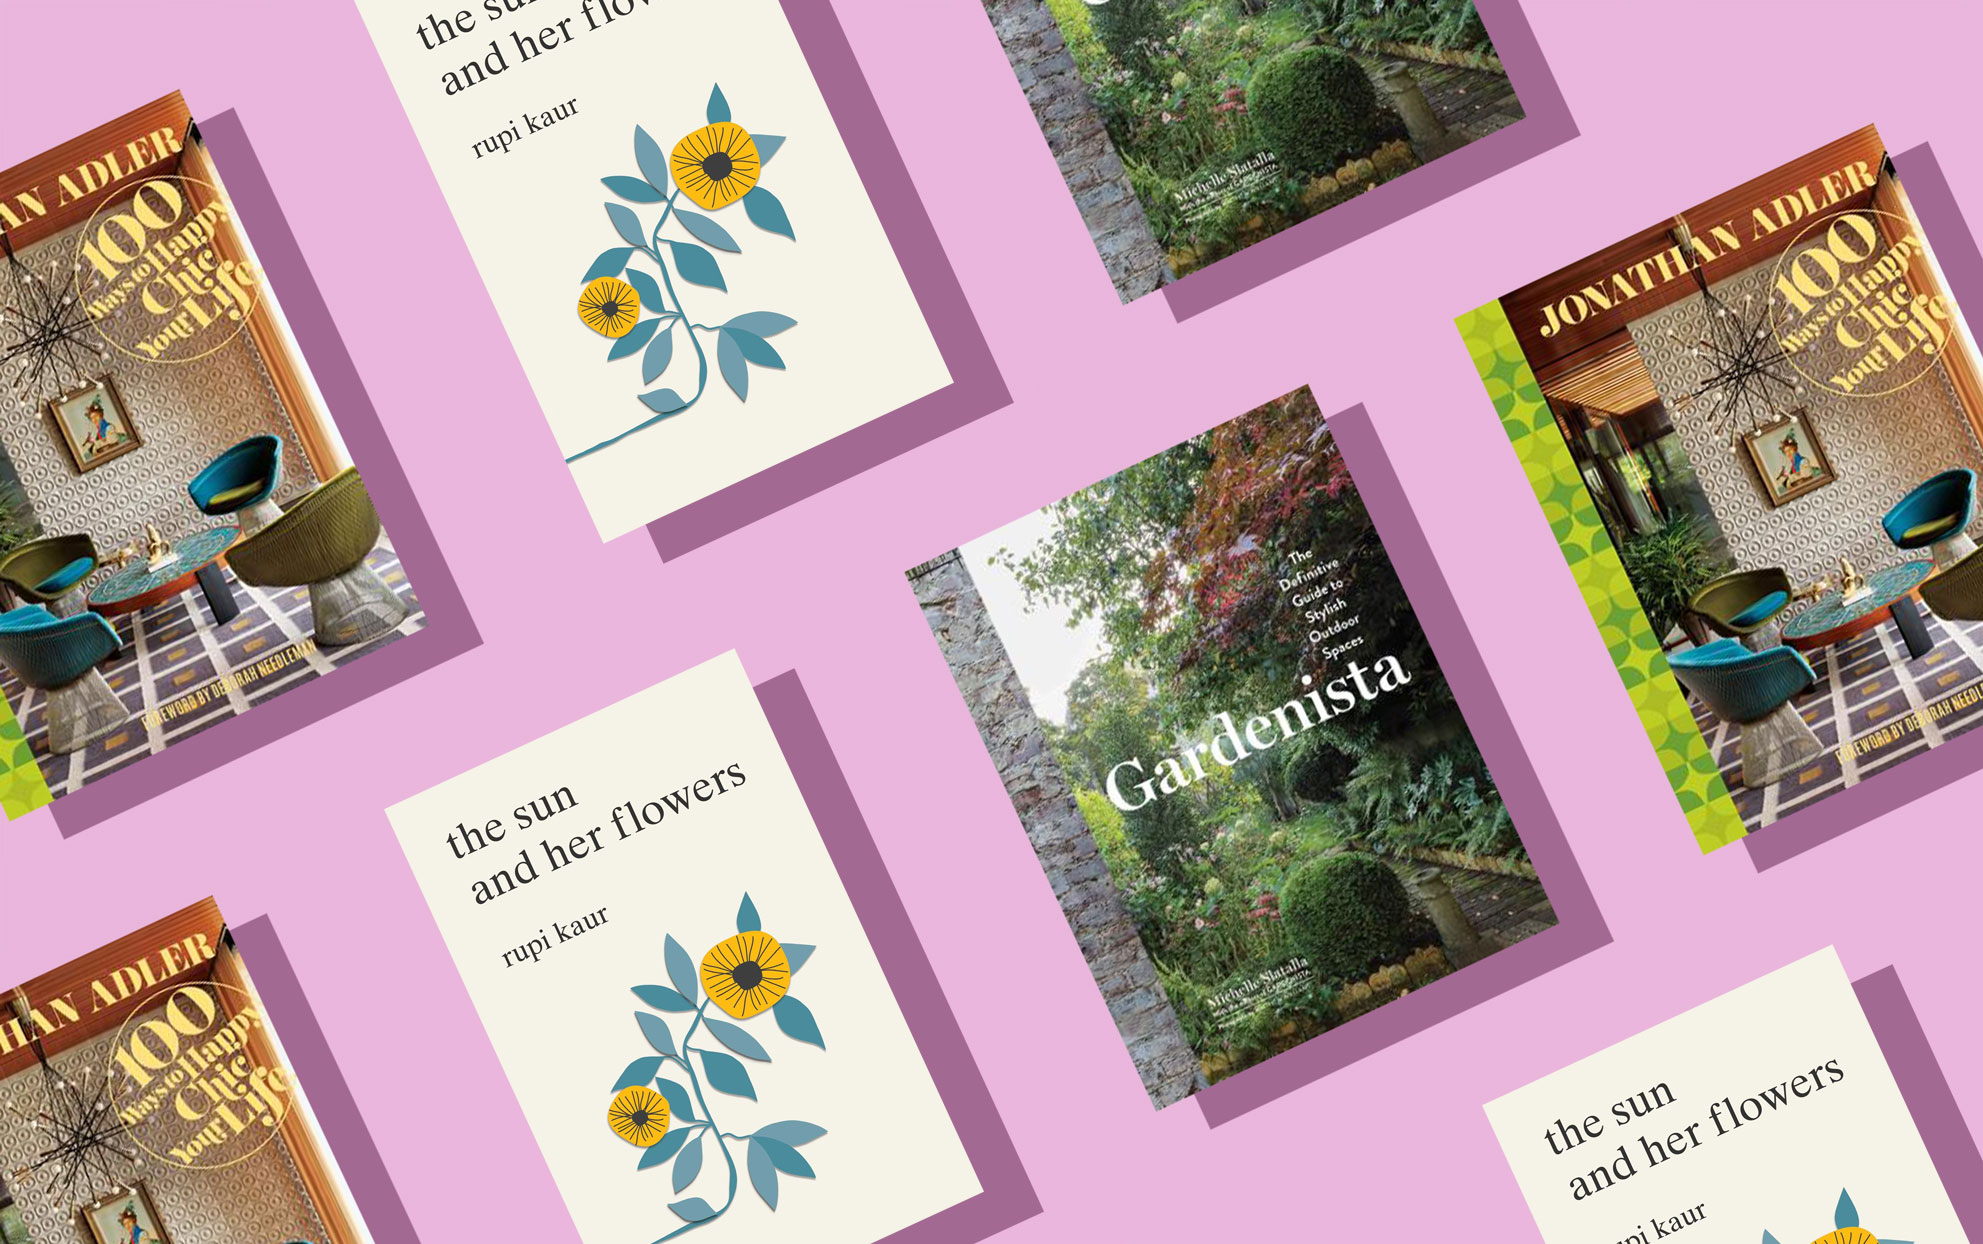 book covers with flowers and gardens